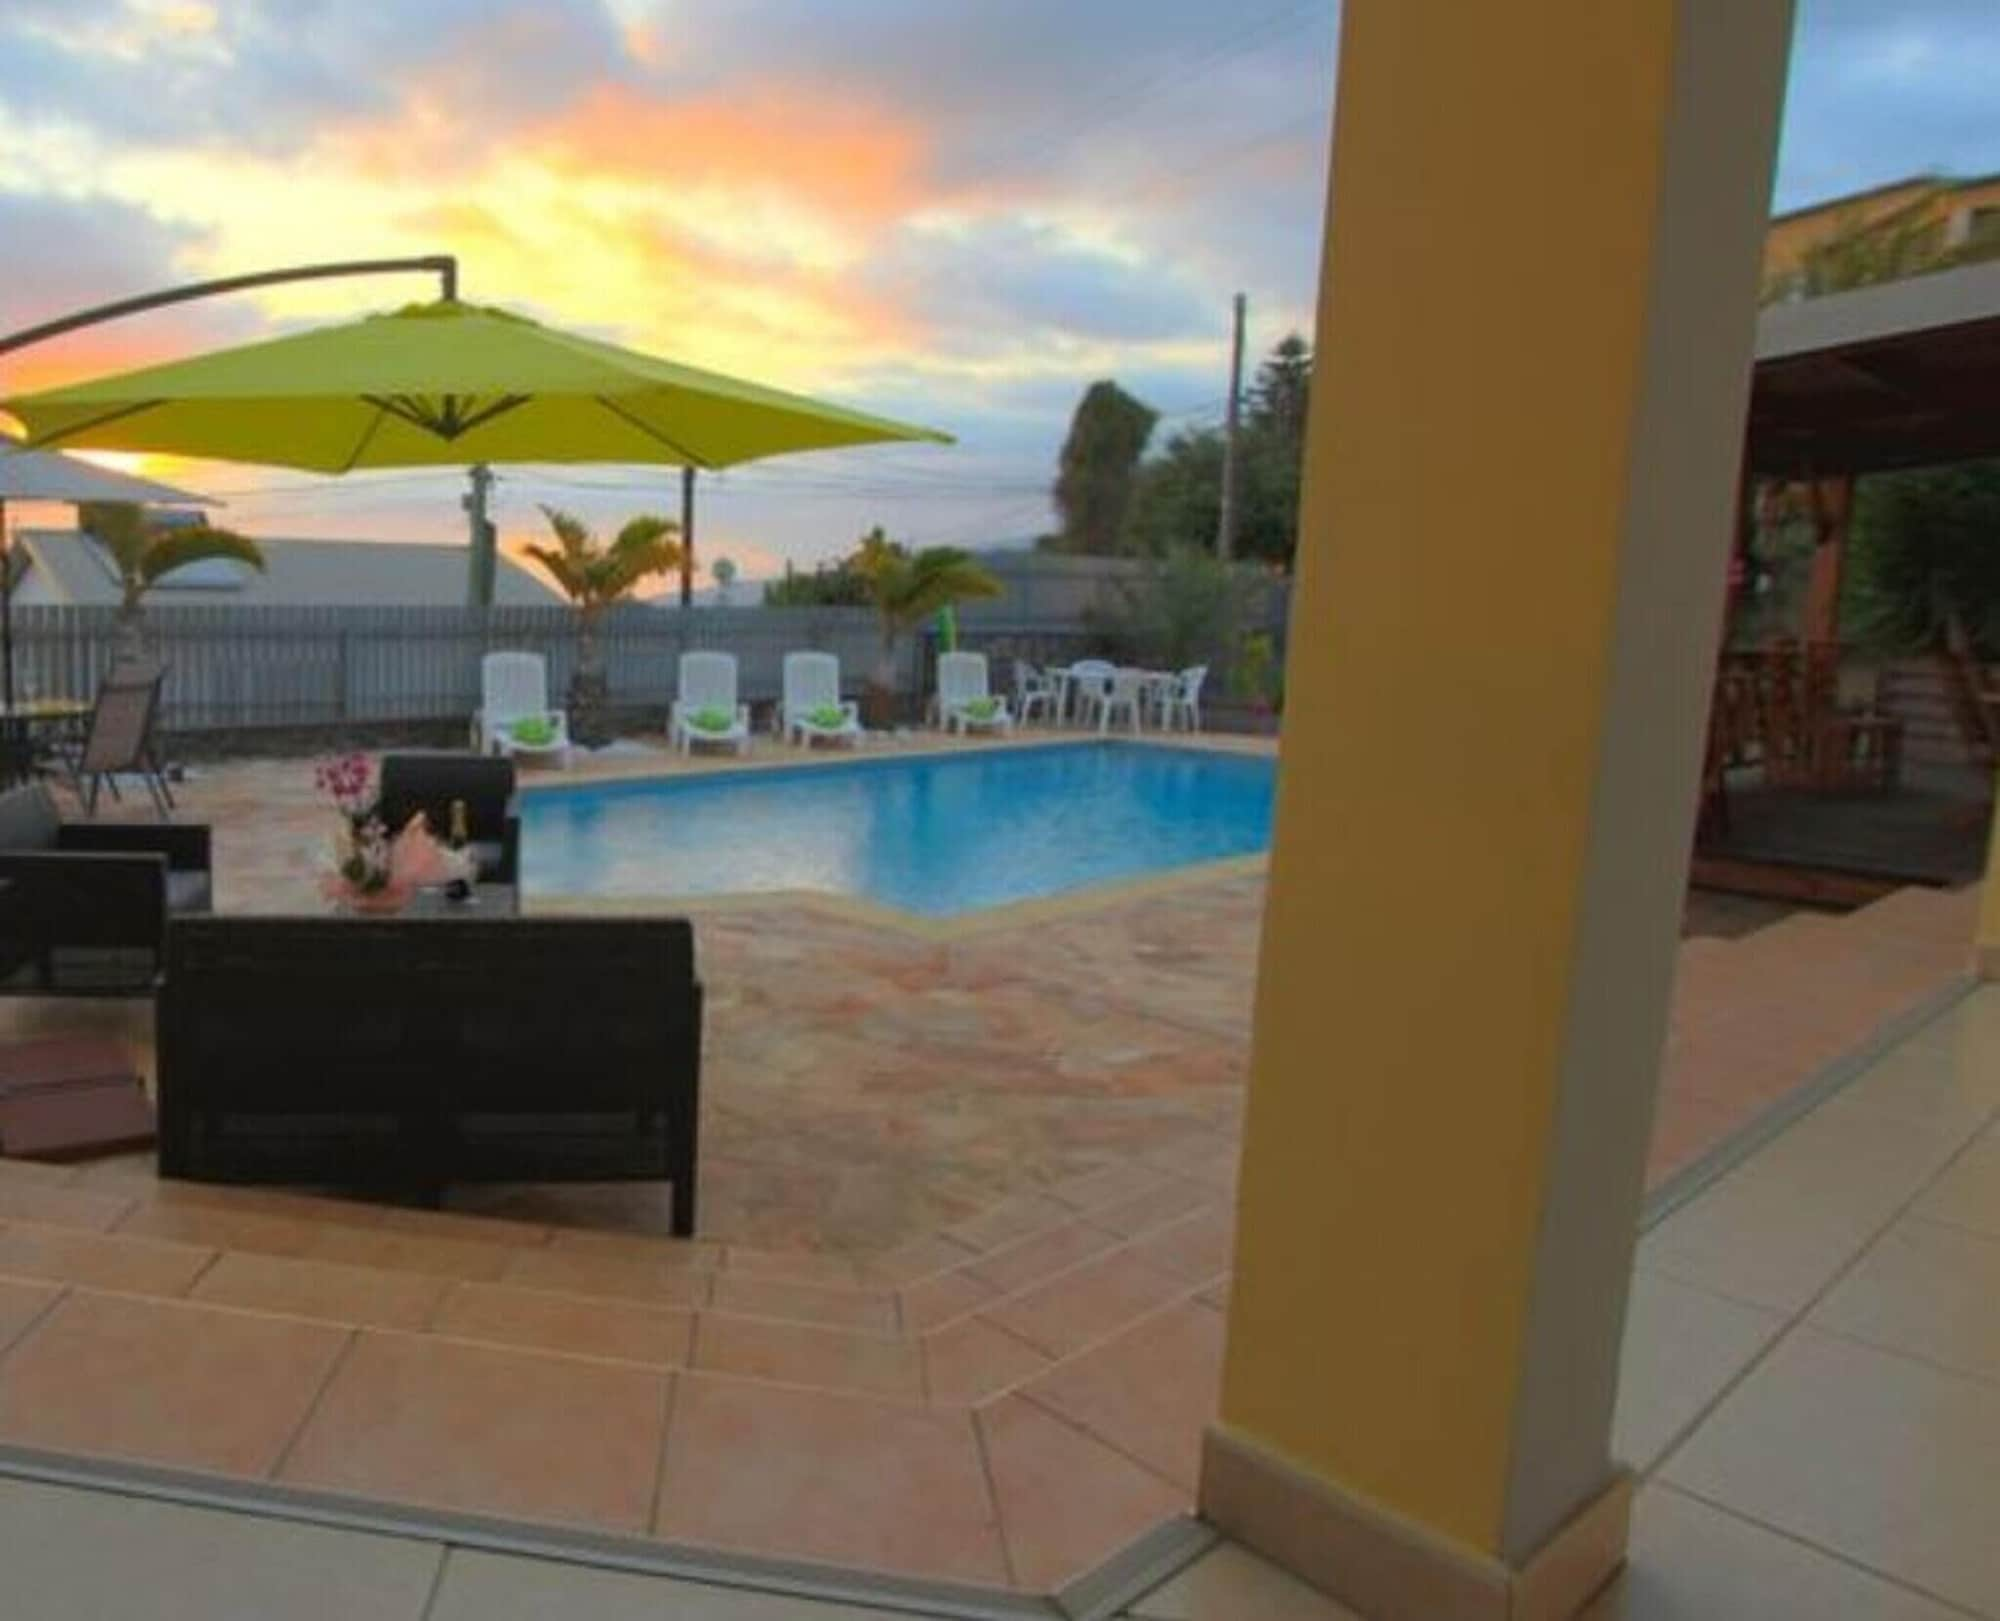 Villa With 4 Bedrooms in Le Tampon, With Wonderful sea View, Private Pool, Enclosed Garden - 11 km From the Beach, Le Tampon